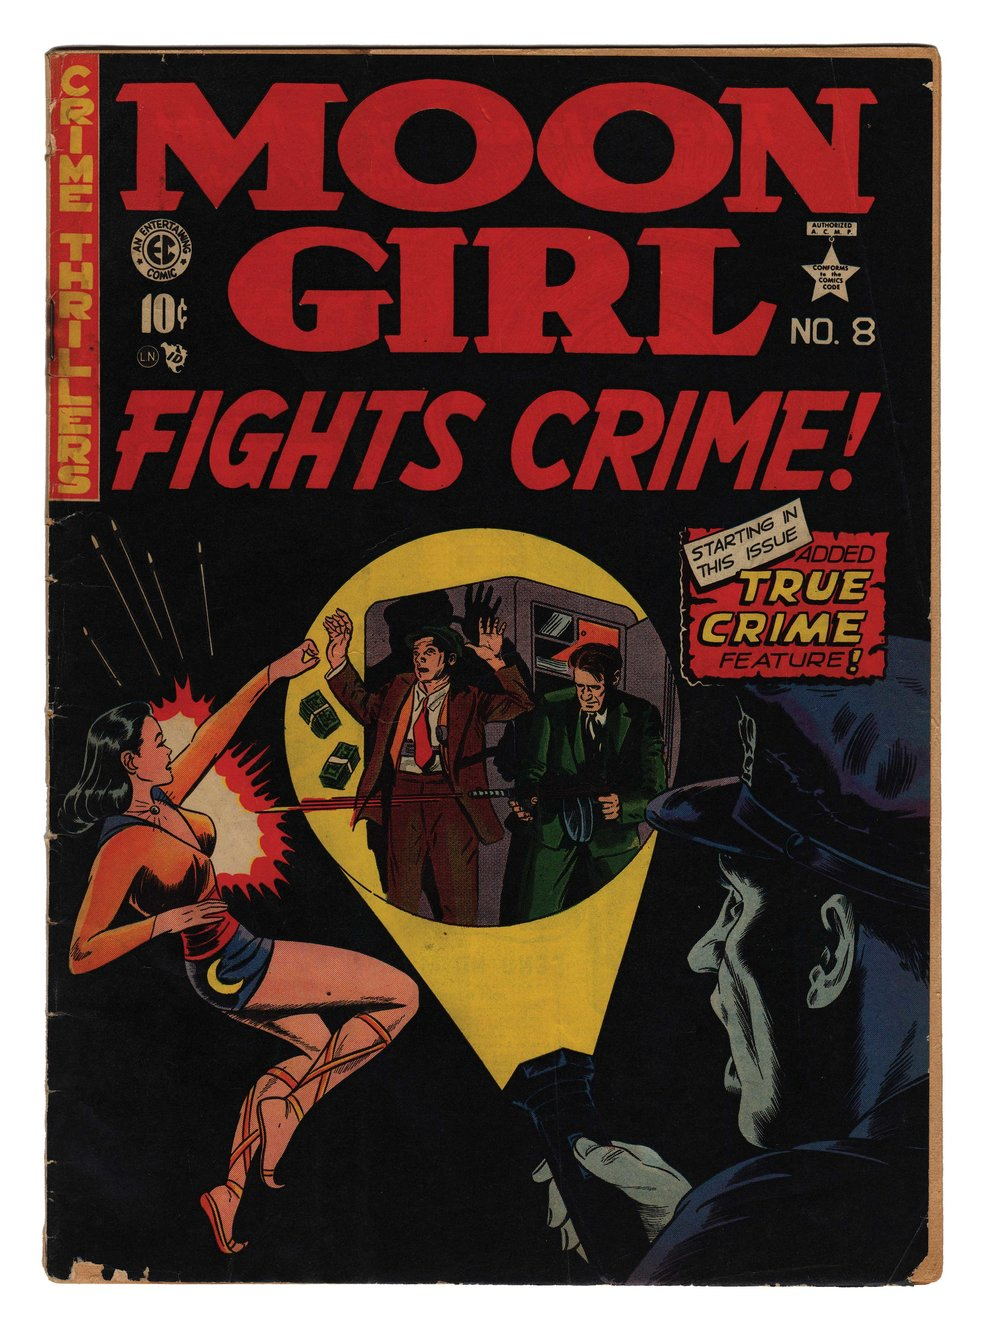 Moon-Girl-Fights-Crime-8.jpg